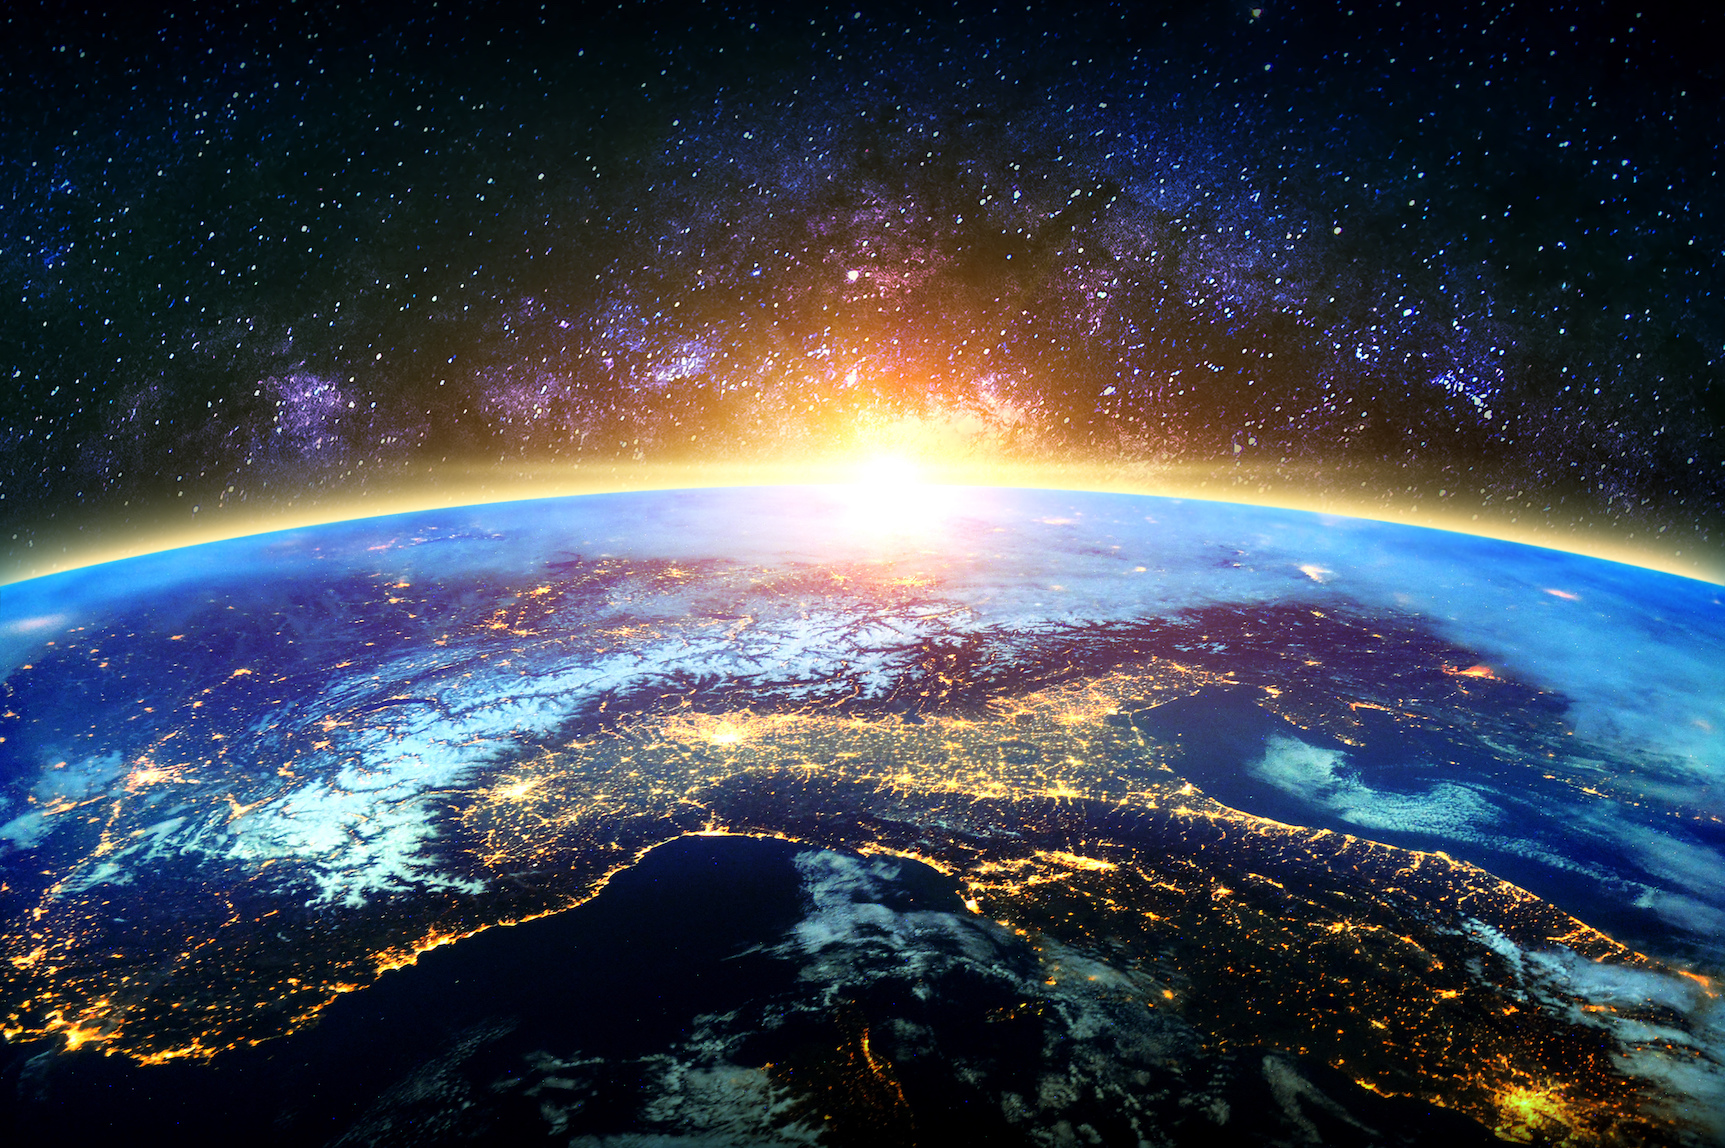 It had been thought that neutrinos could pass through anything, but a new study found that the Earth absorbs high energy neutrinos.